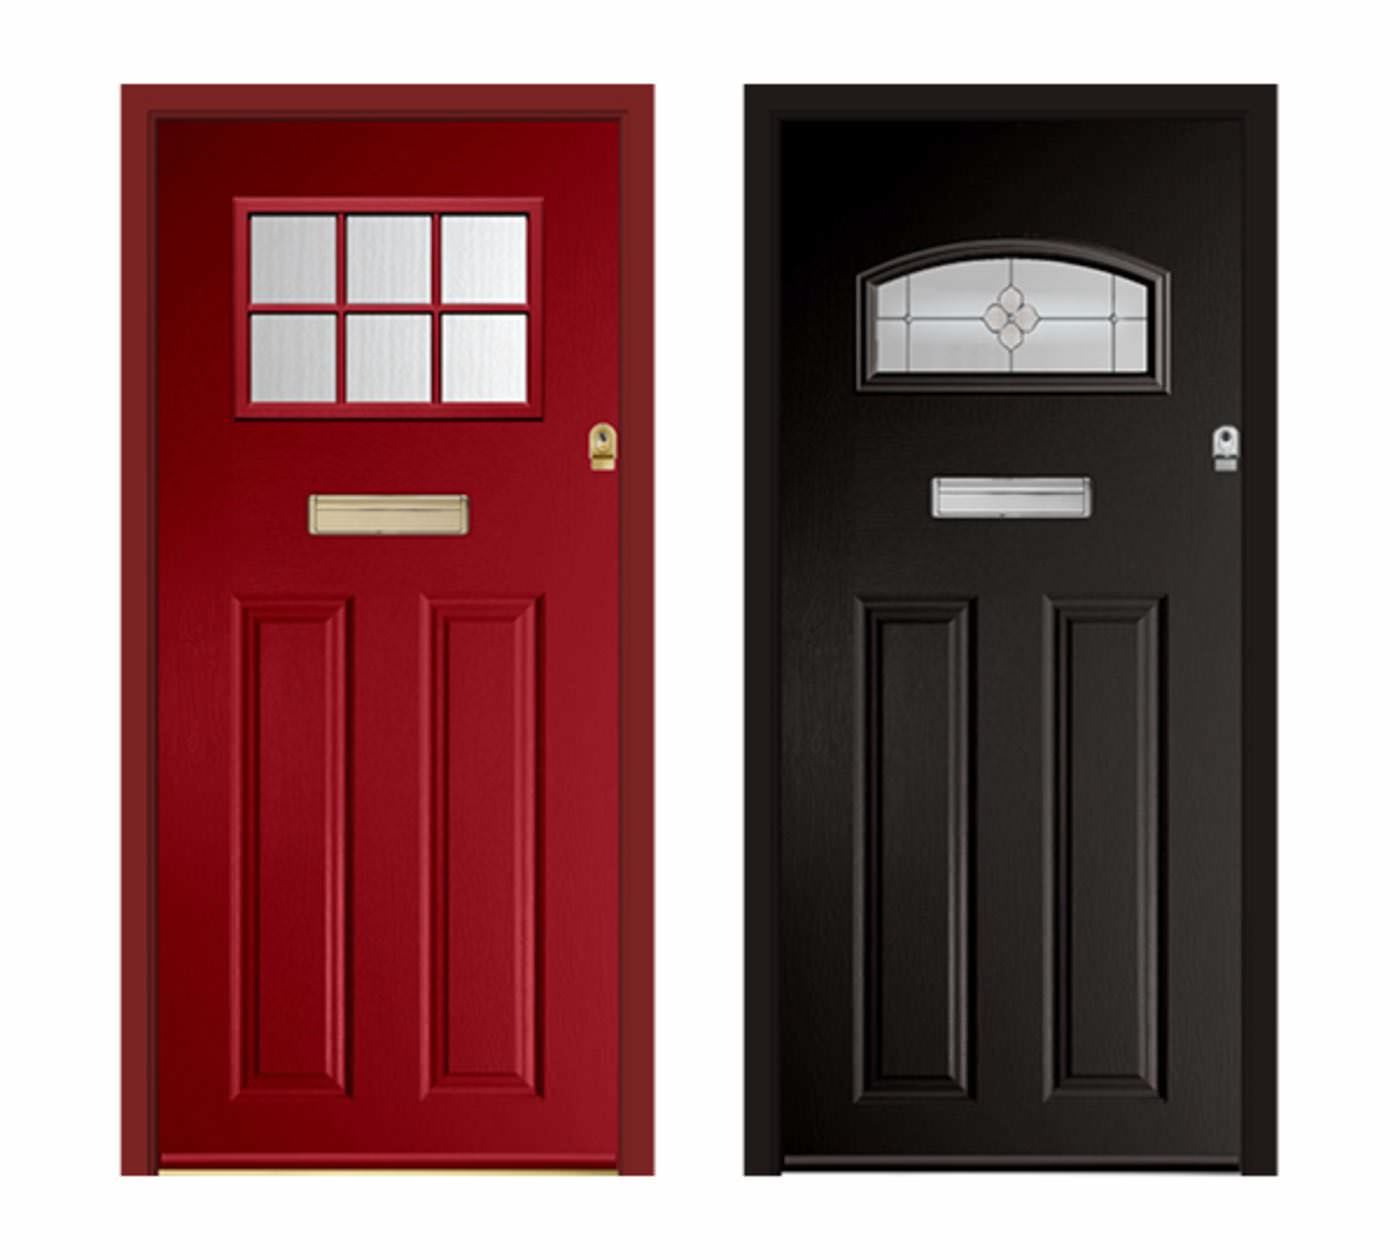 Composite Doors VS uPVC Doors Timeline Image